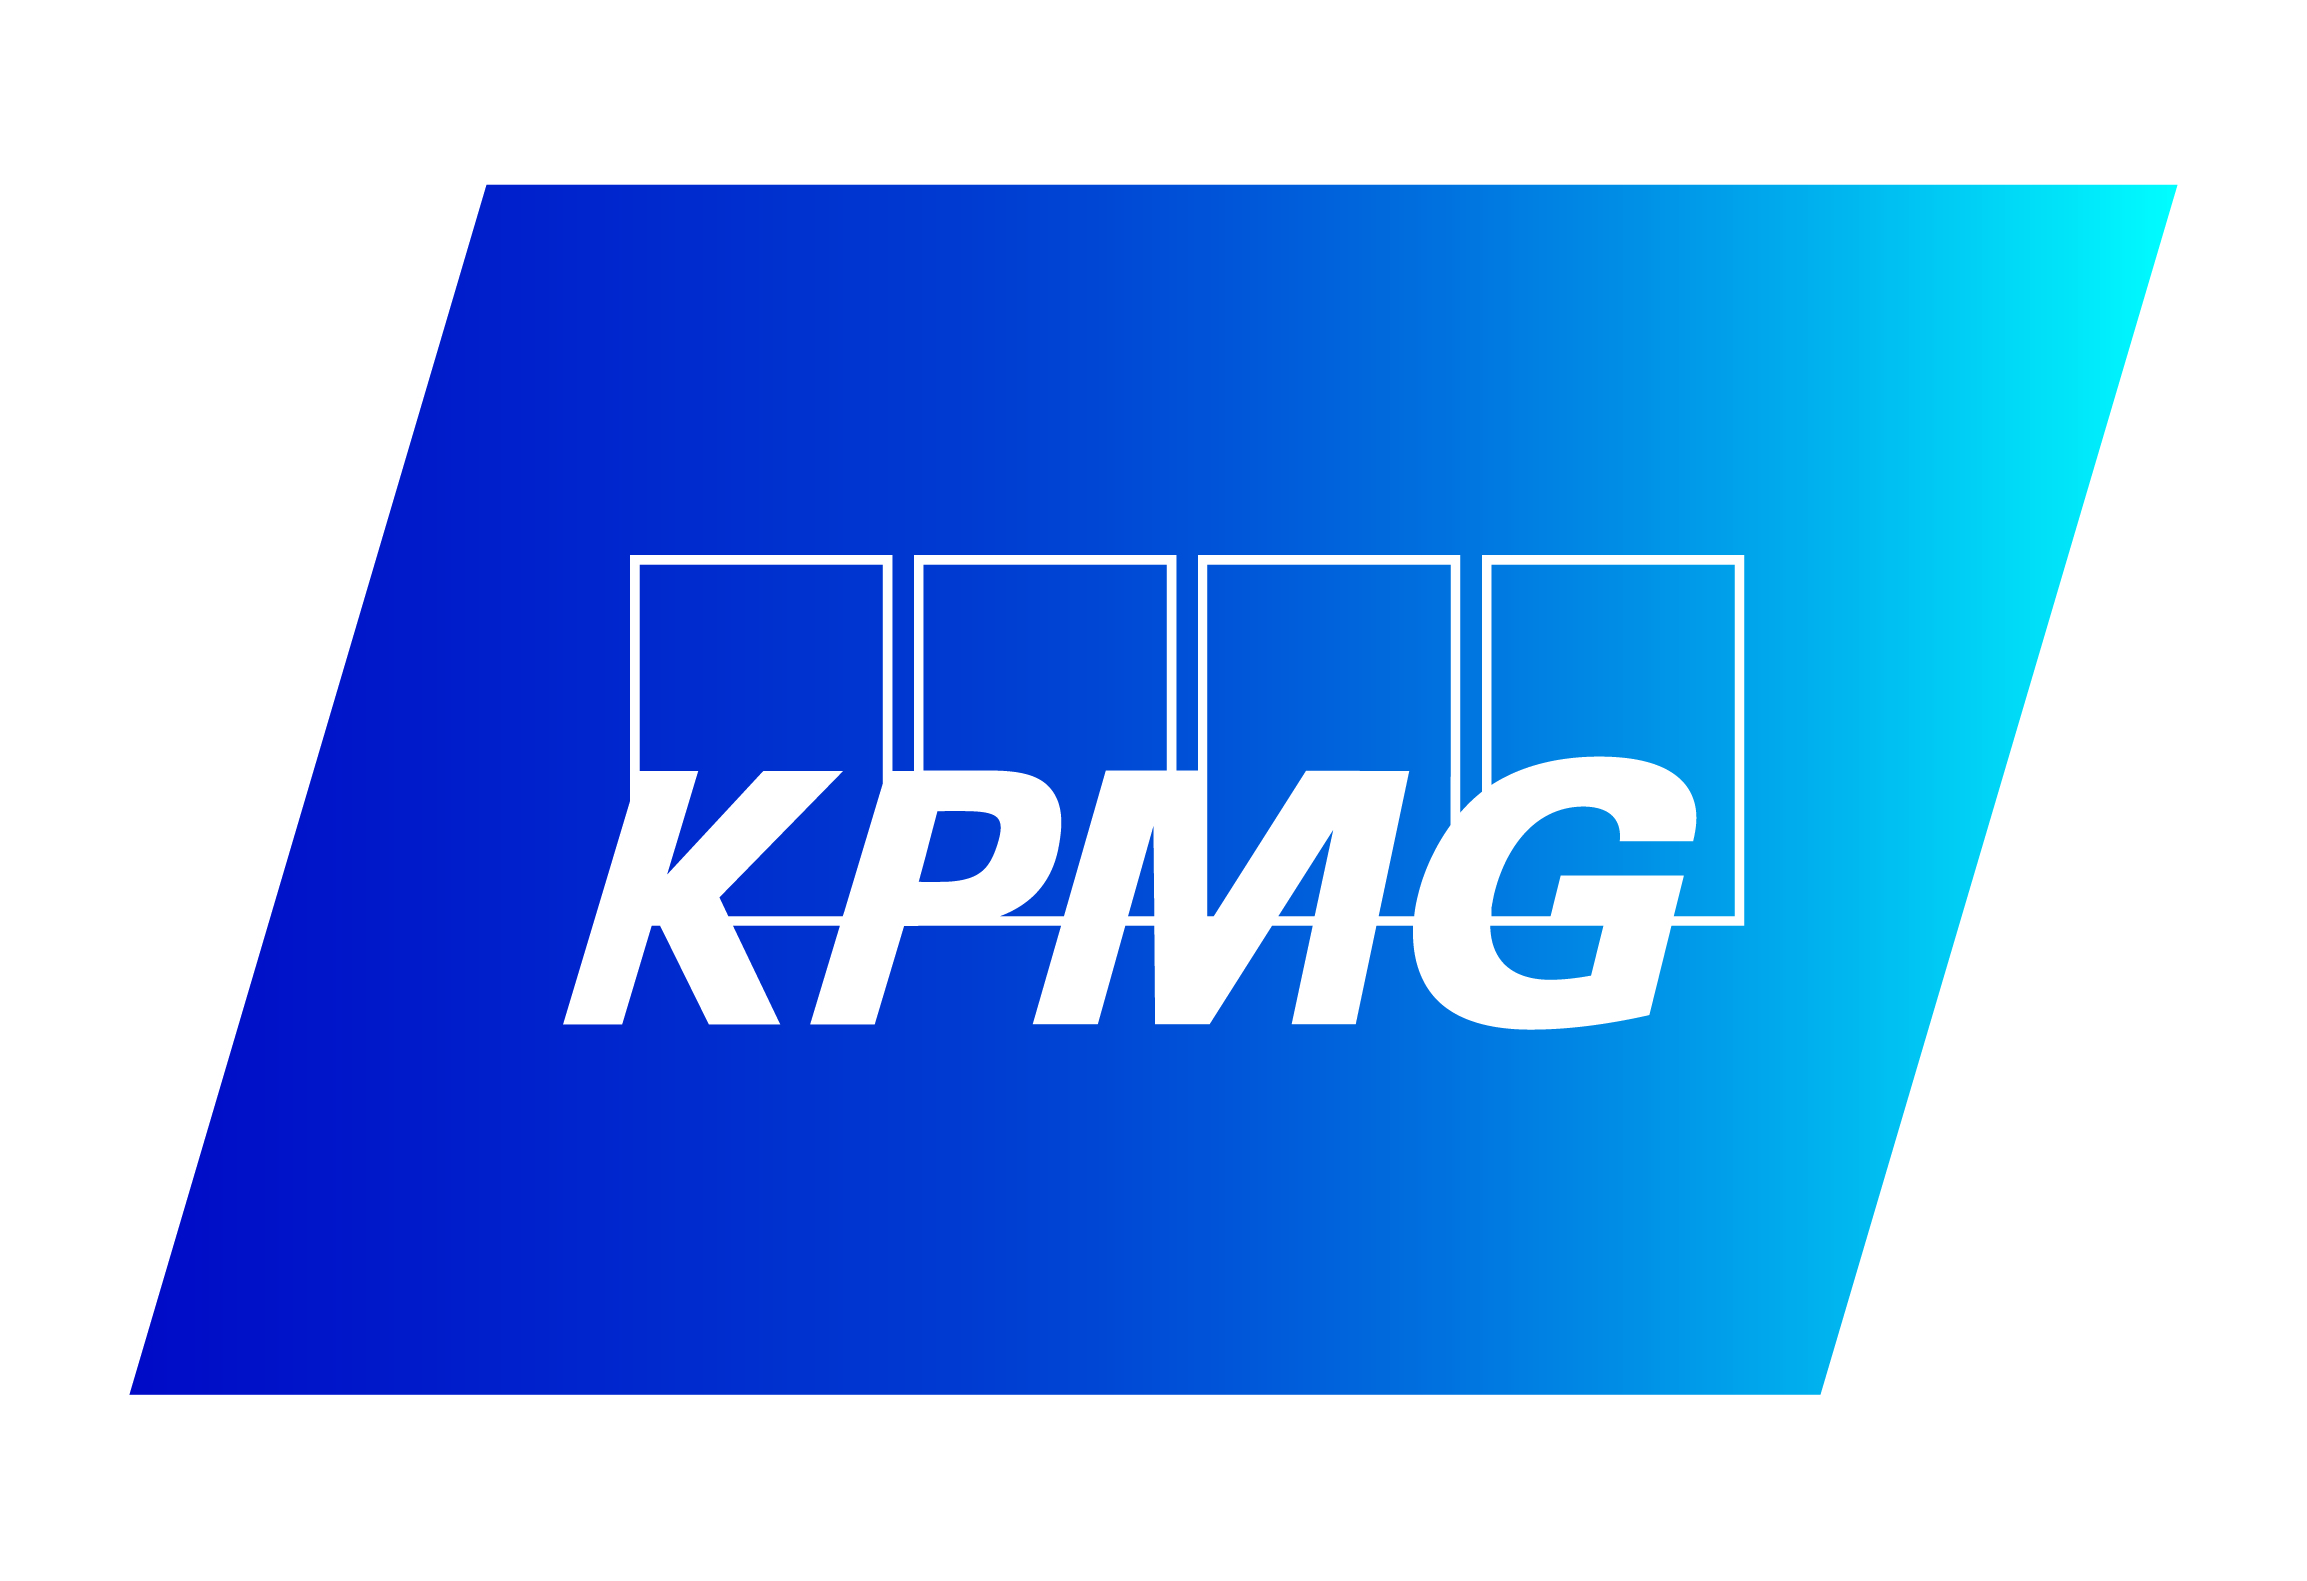 KPMG_Endorsement_CMYK